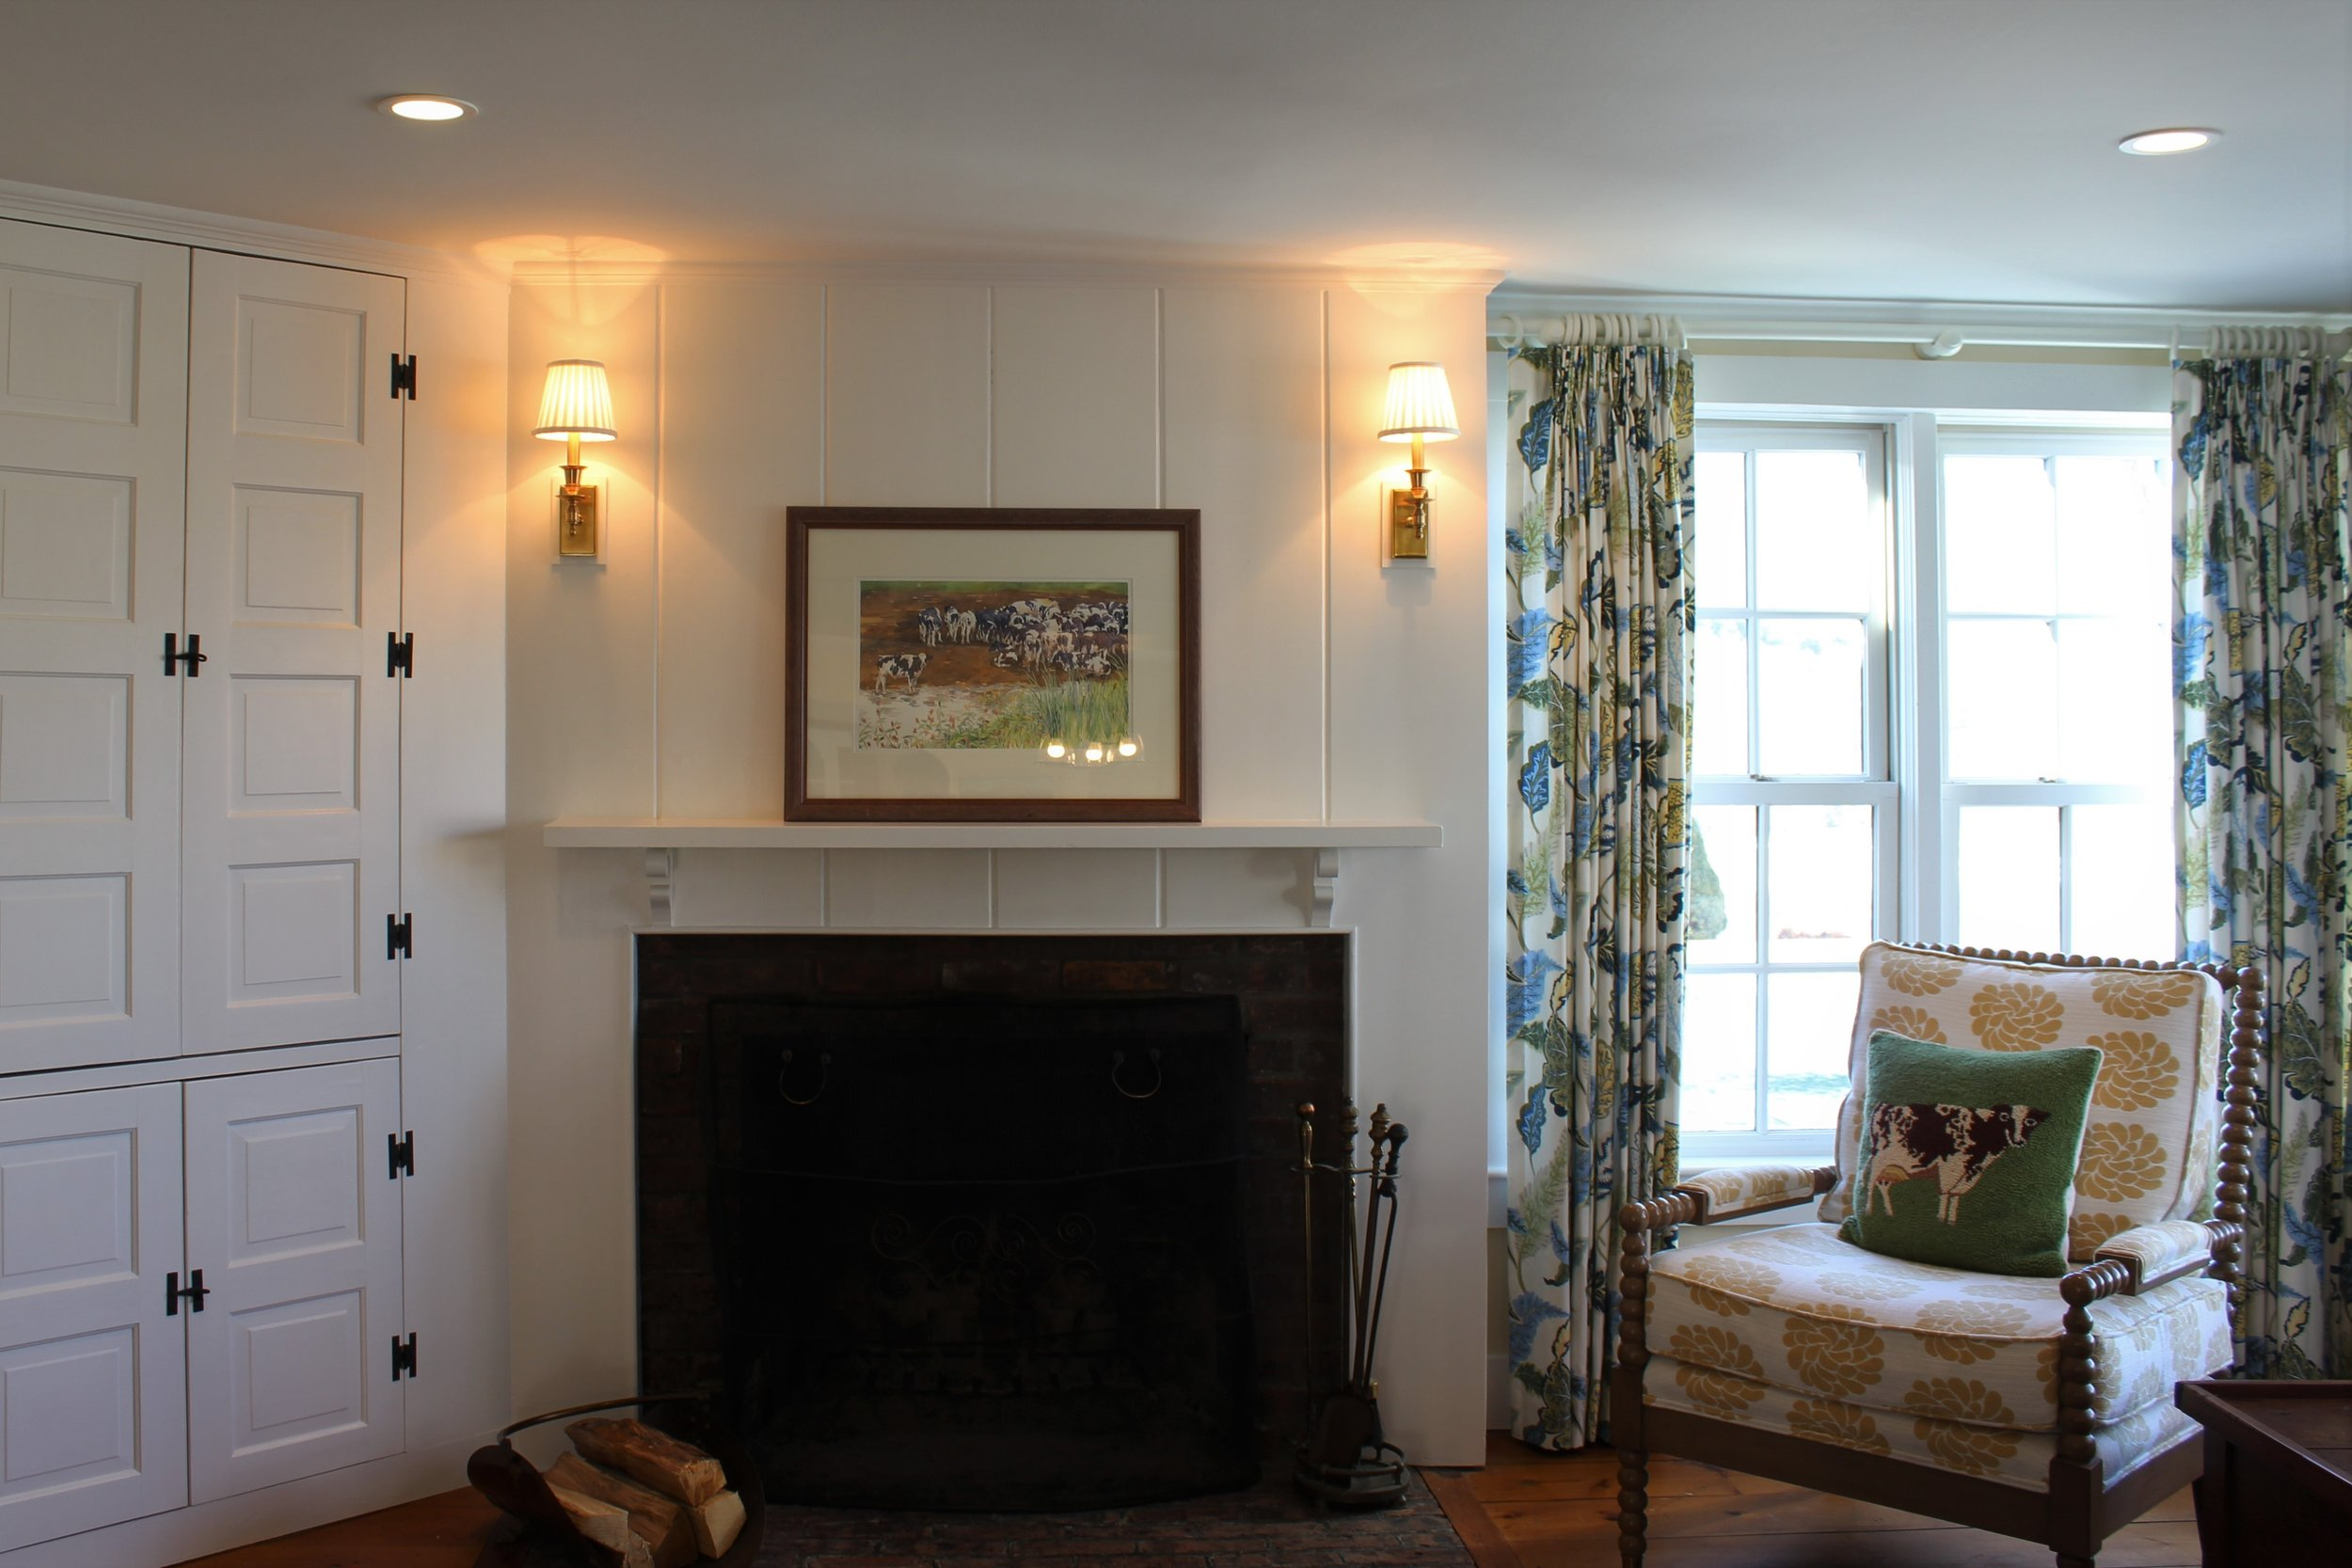 The fireplace is the antithesis of the one above. This is over 100 years old and in an antique farmhouse. The owner wanted to keep the simplicity of the original simple mantle and paneled wall. This allowed us to bring pattern into the room with drapery panels and the spool chair fabric. We added simple brass sconces to frame the artwork and bring light into the space at night.